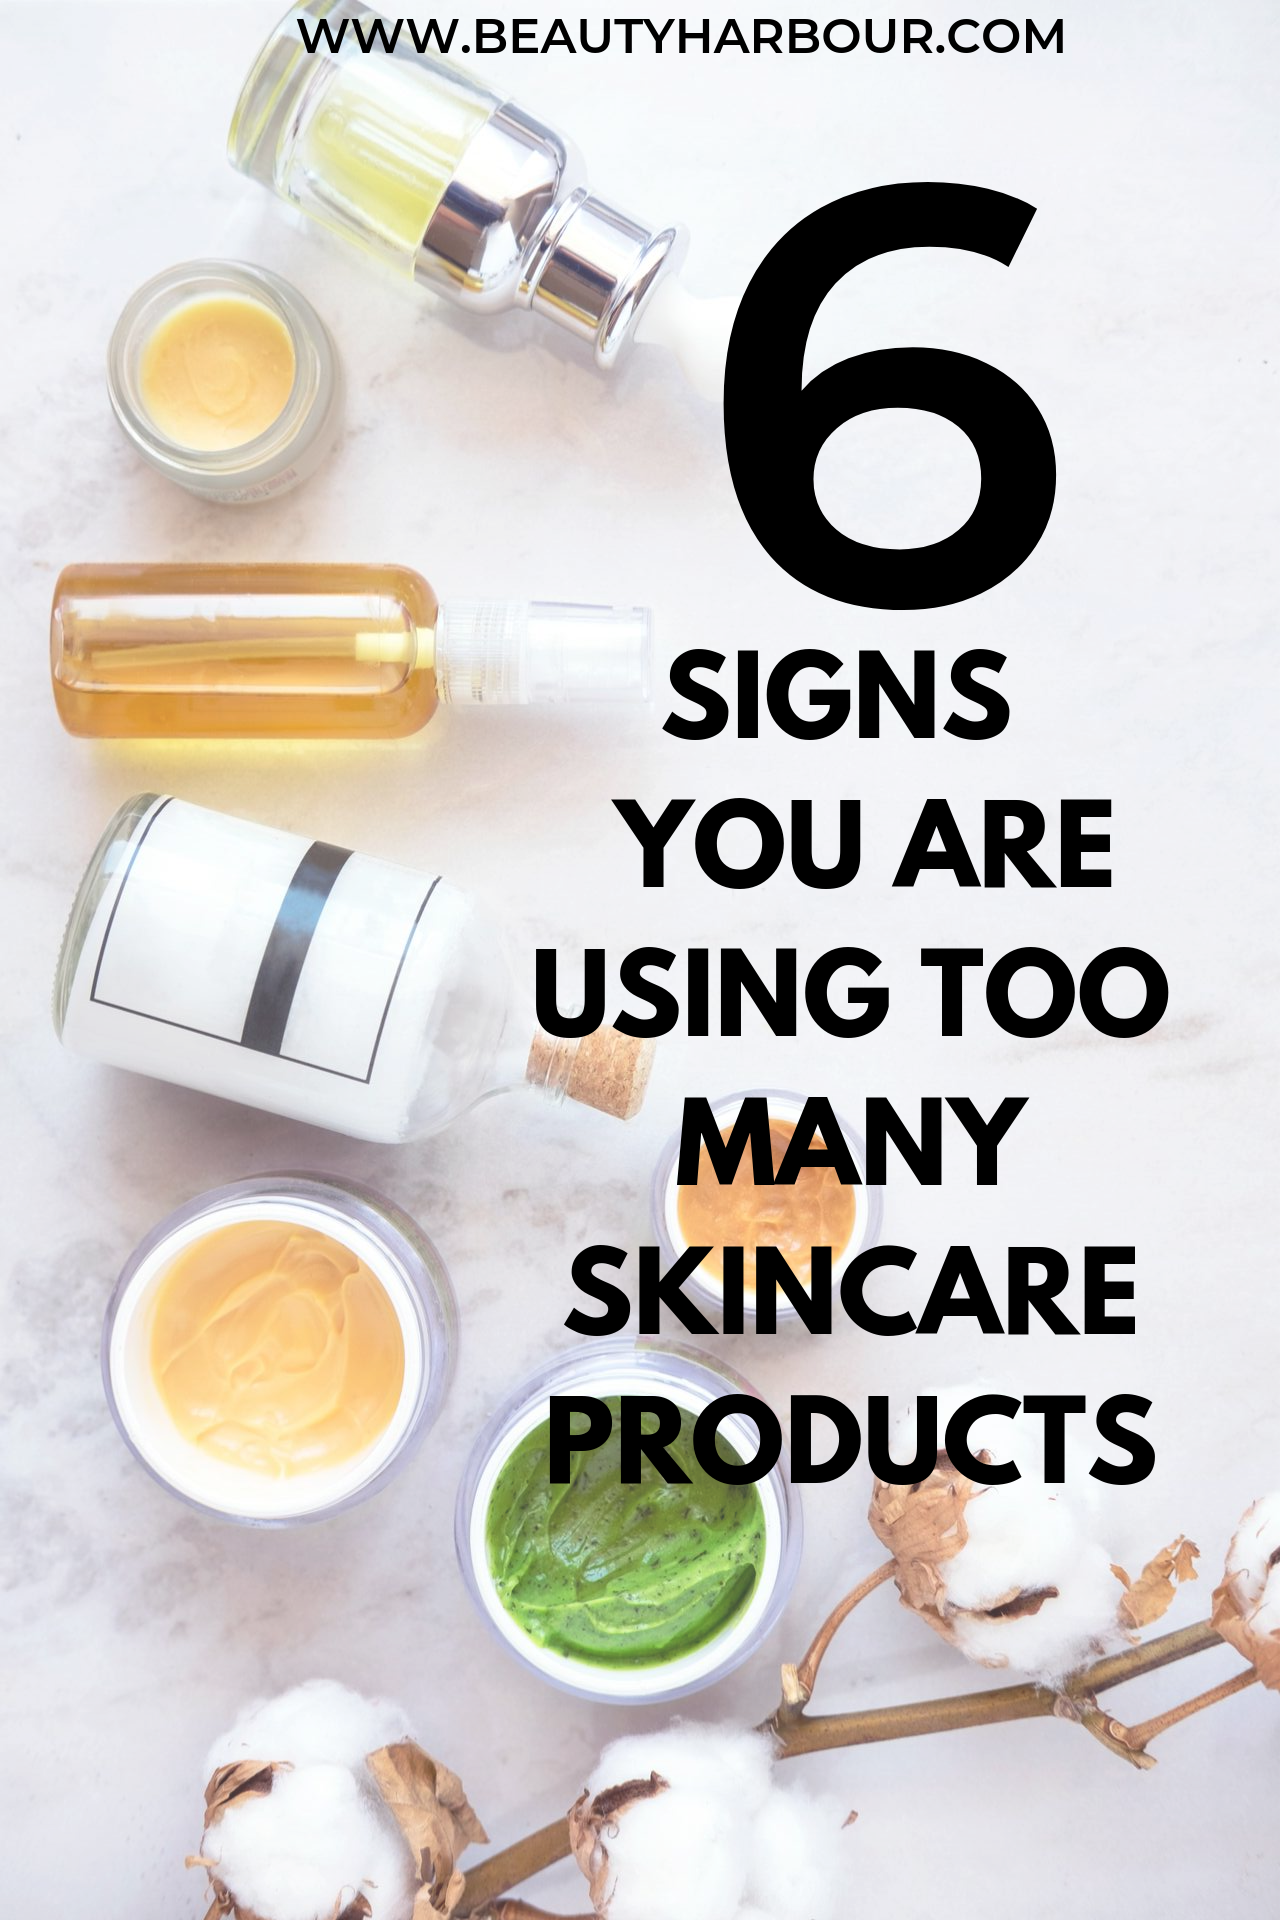 Too many skincare products